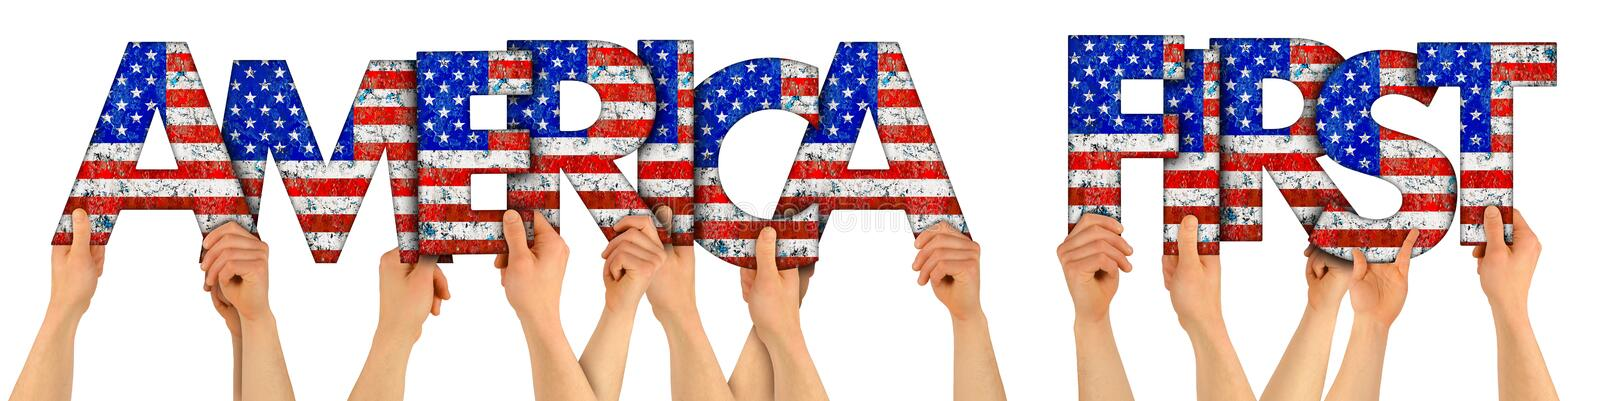 People arms hands holding up wooden letter lettering forming words maerica first with USA stars spangled banner national flag. People arms hands holding up stock photos